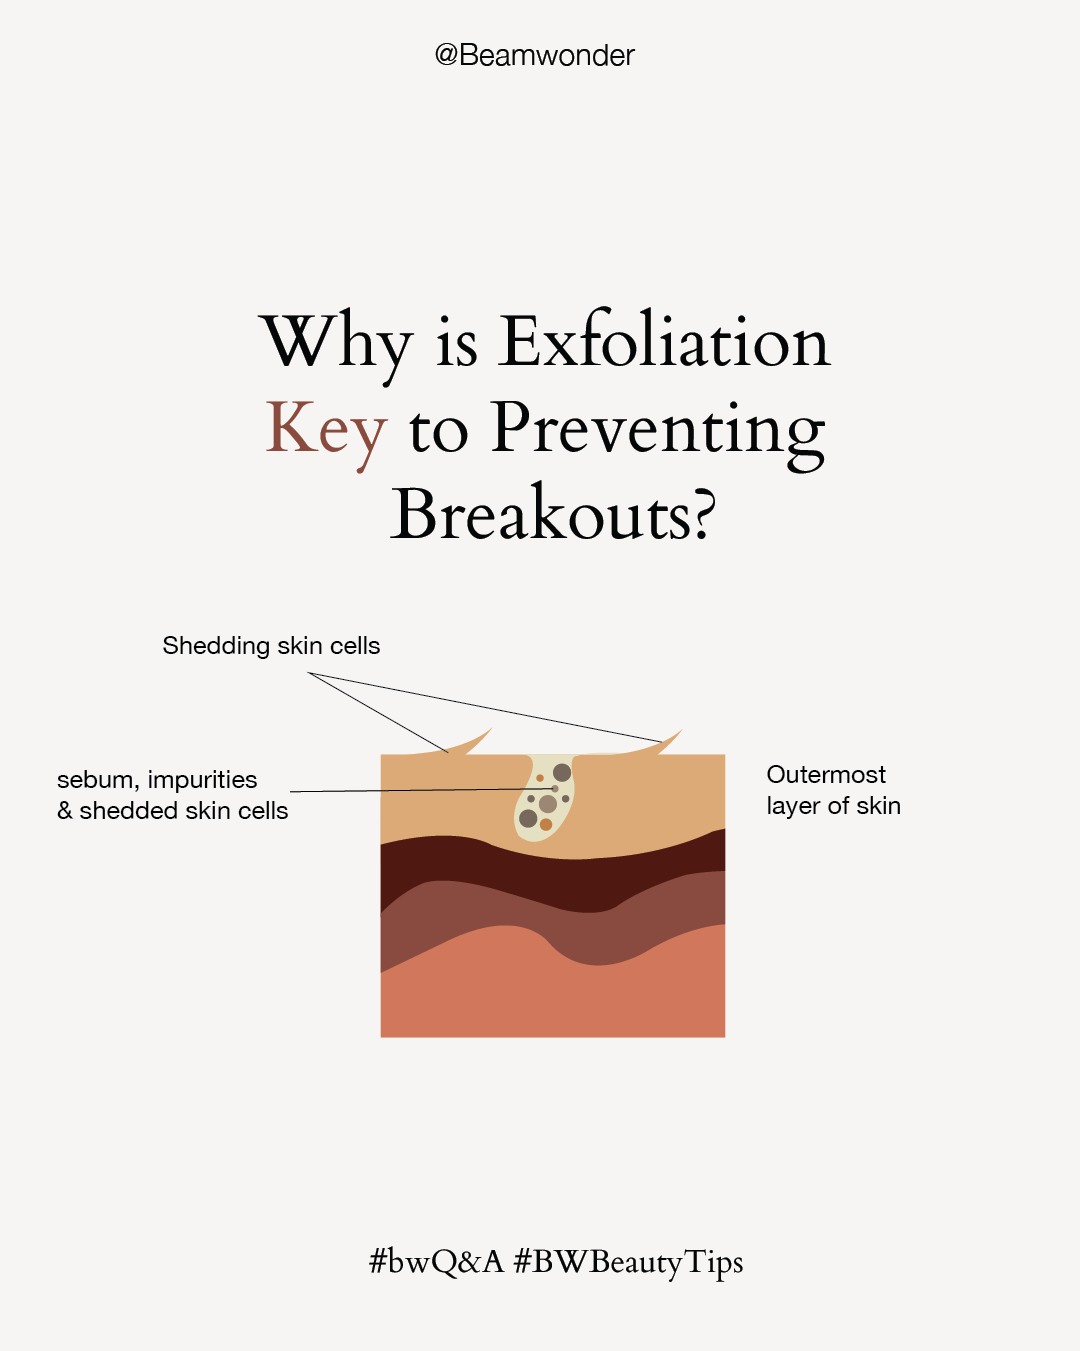 Q&A: Why is Exfoliation Key to Preventing Breakouts?